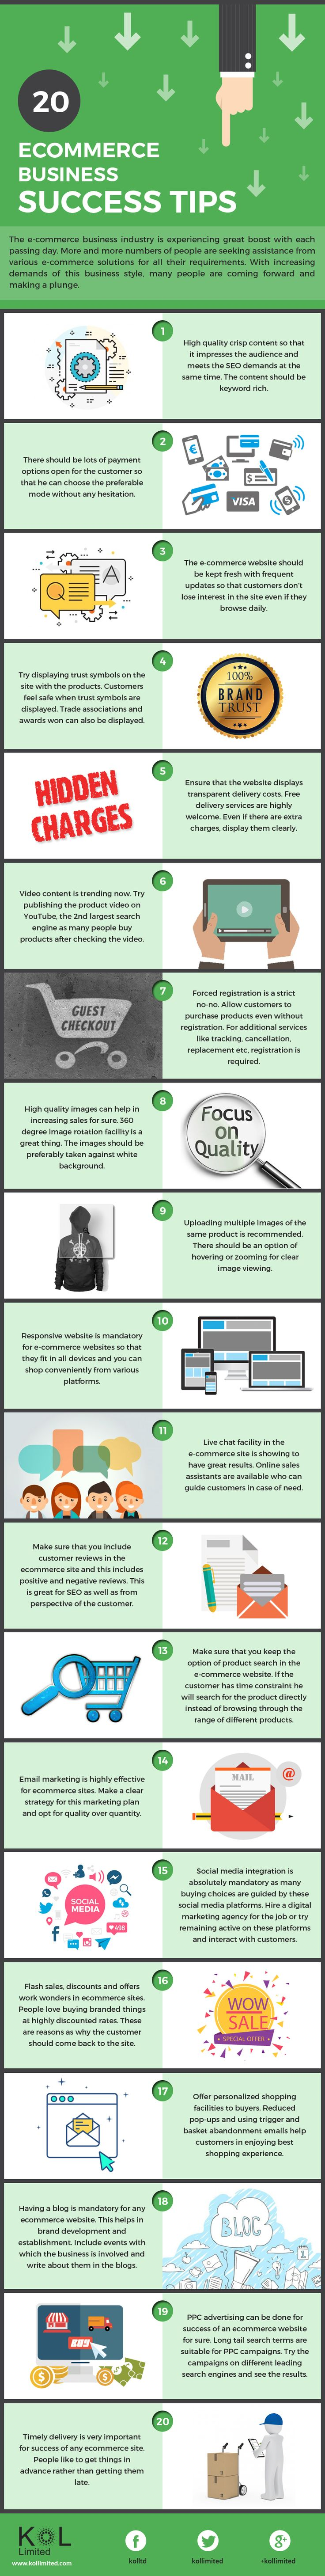 Starting an Online Shop? 20 Tips for #Ecommerce Website Beginners #Infographic - Love a good success story? Learn how I went from zero to 1 million in sales in 5 months with an e-commerce store.